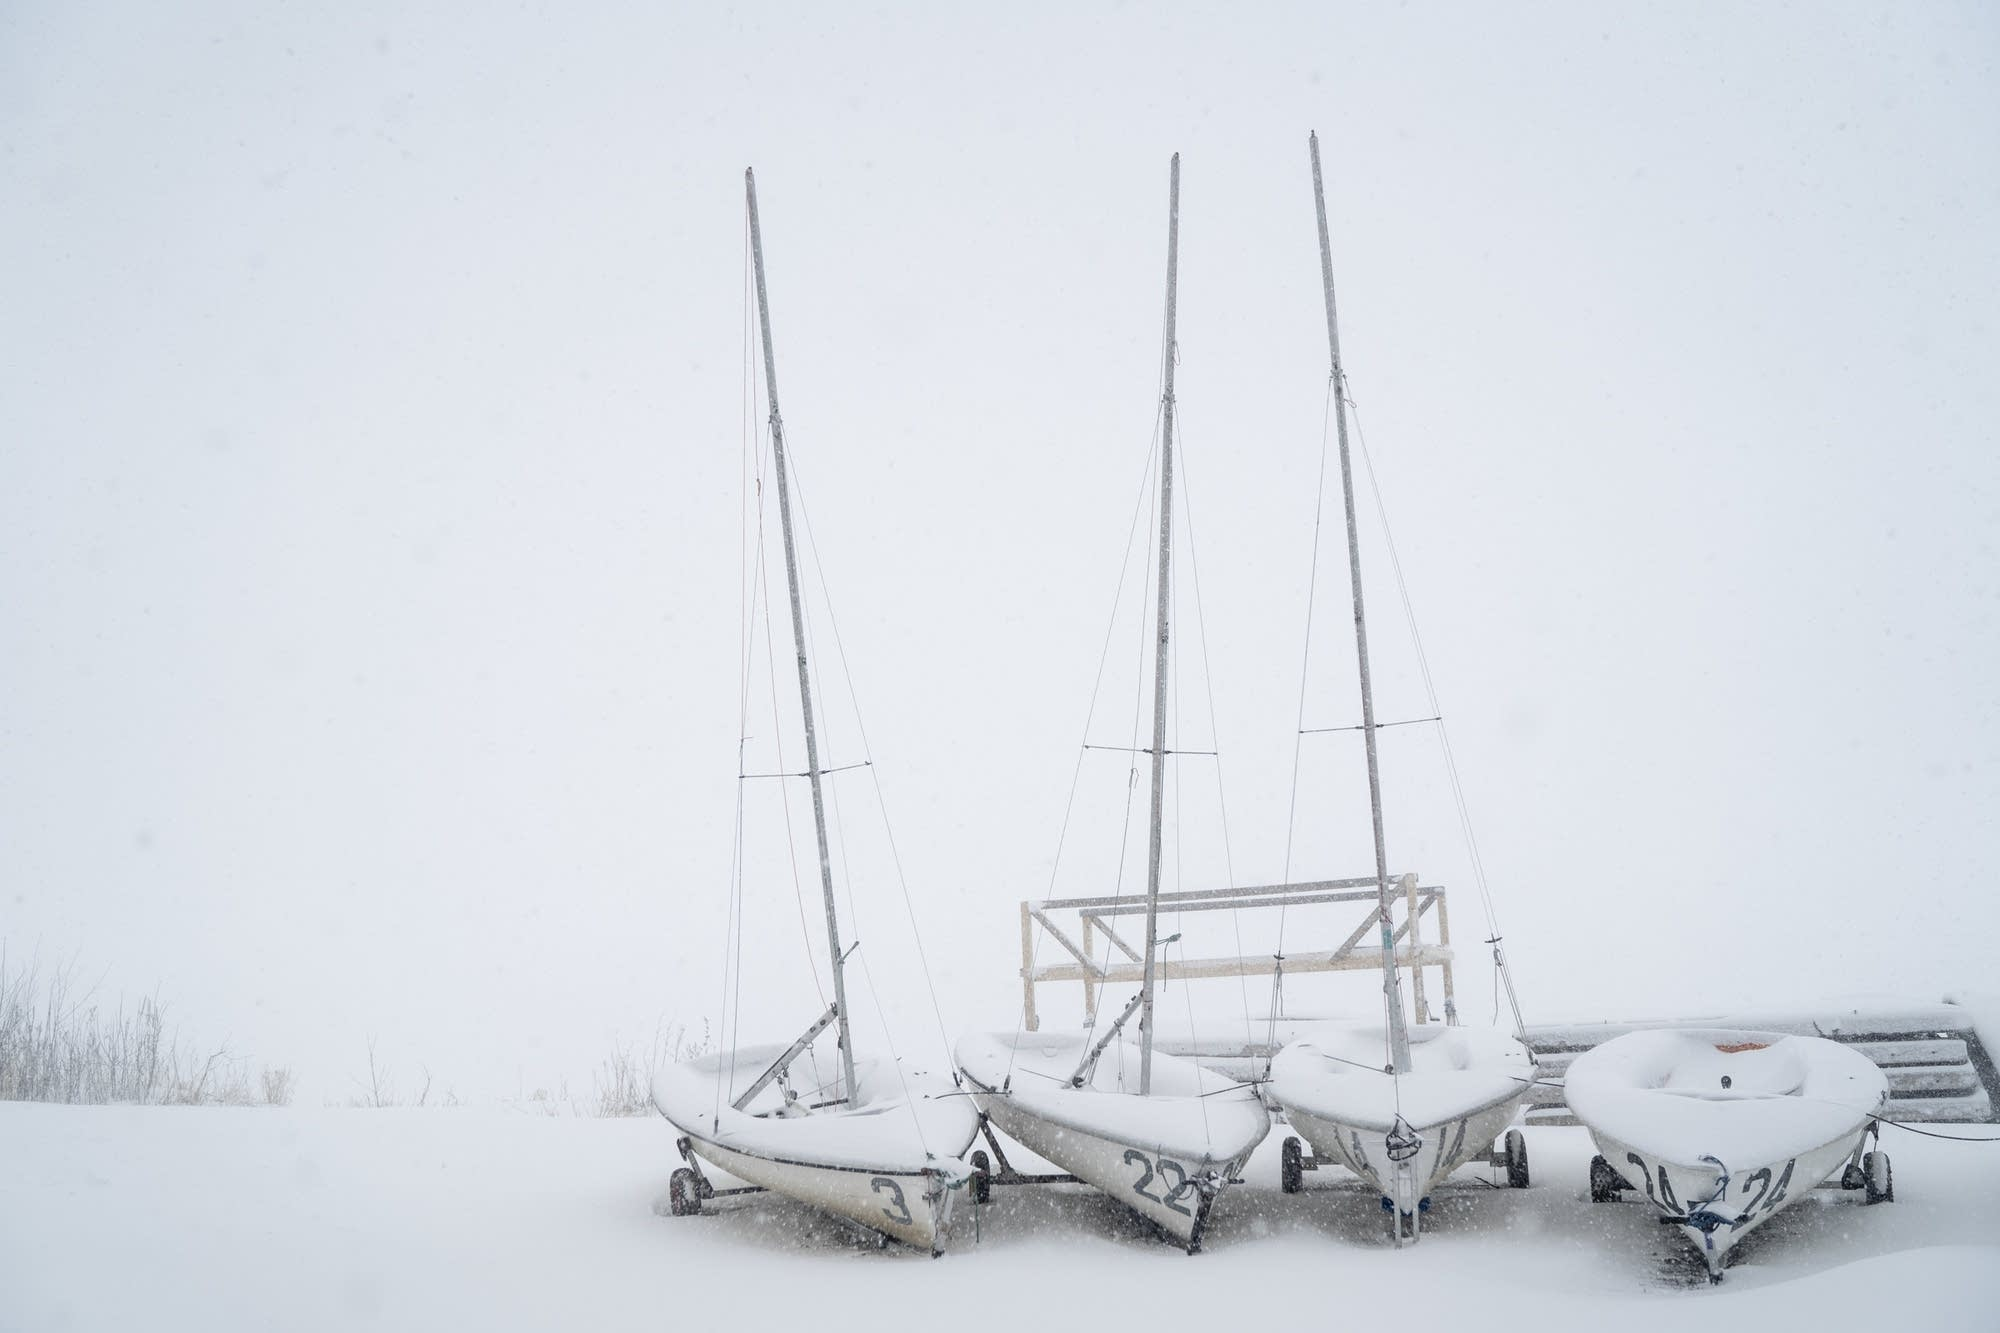 Snow assails boats on the shore of Bde Mka Ska.